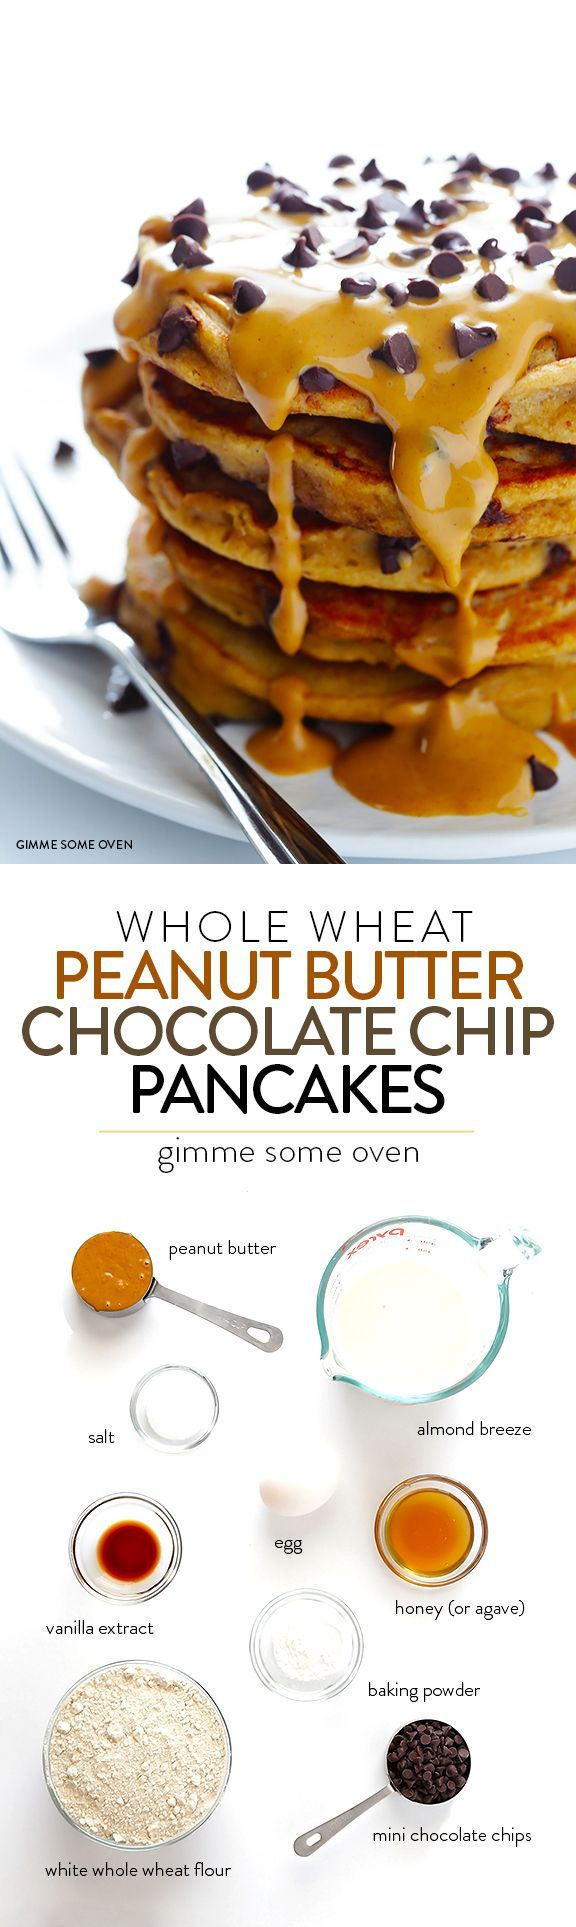 Whole Wheat Peanut Butter Chocolate Chip Pancakes -- so delicious, and made healthier with a few simple tweaks! | gimmesomeoven.com